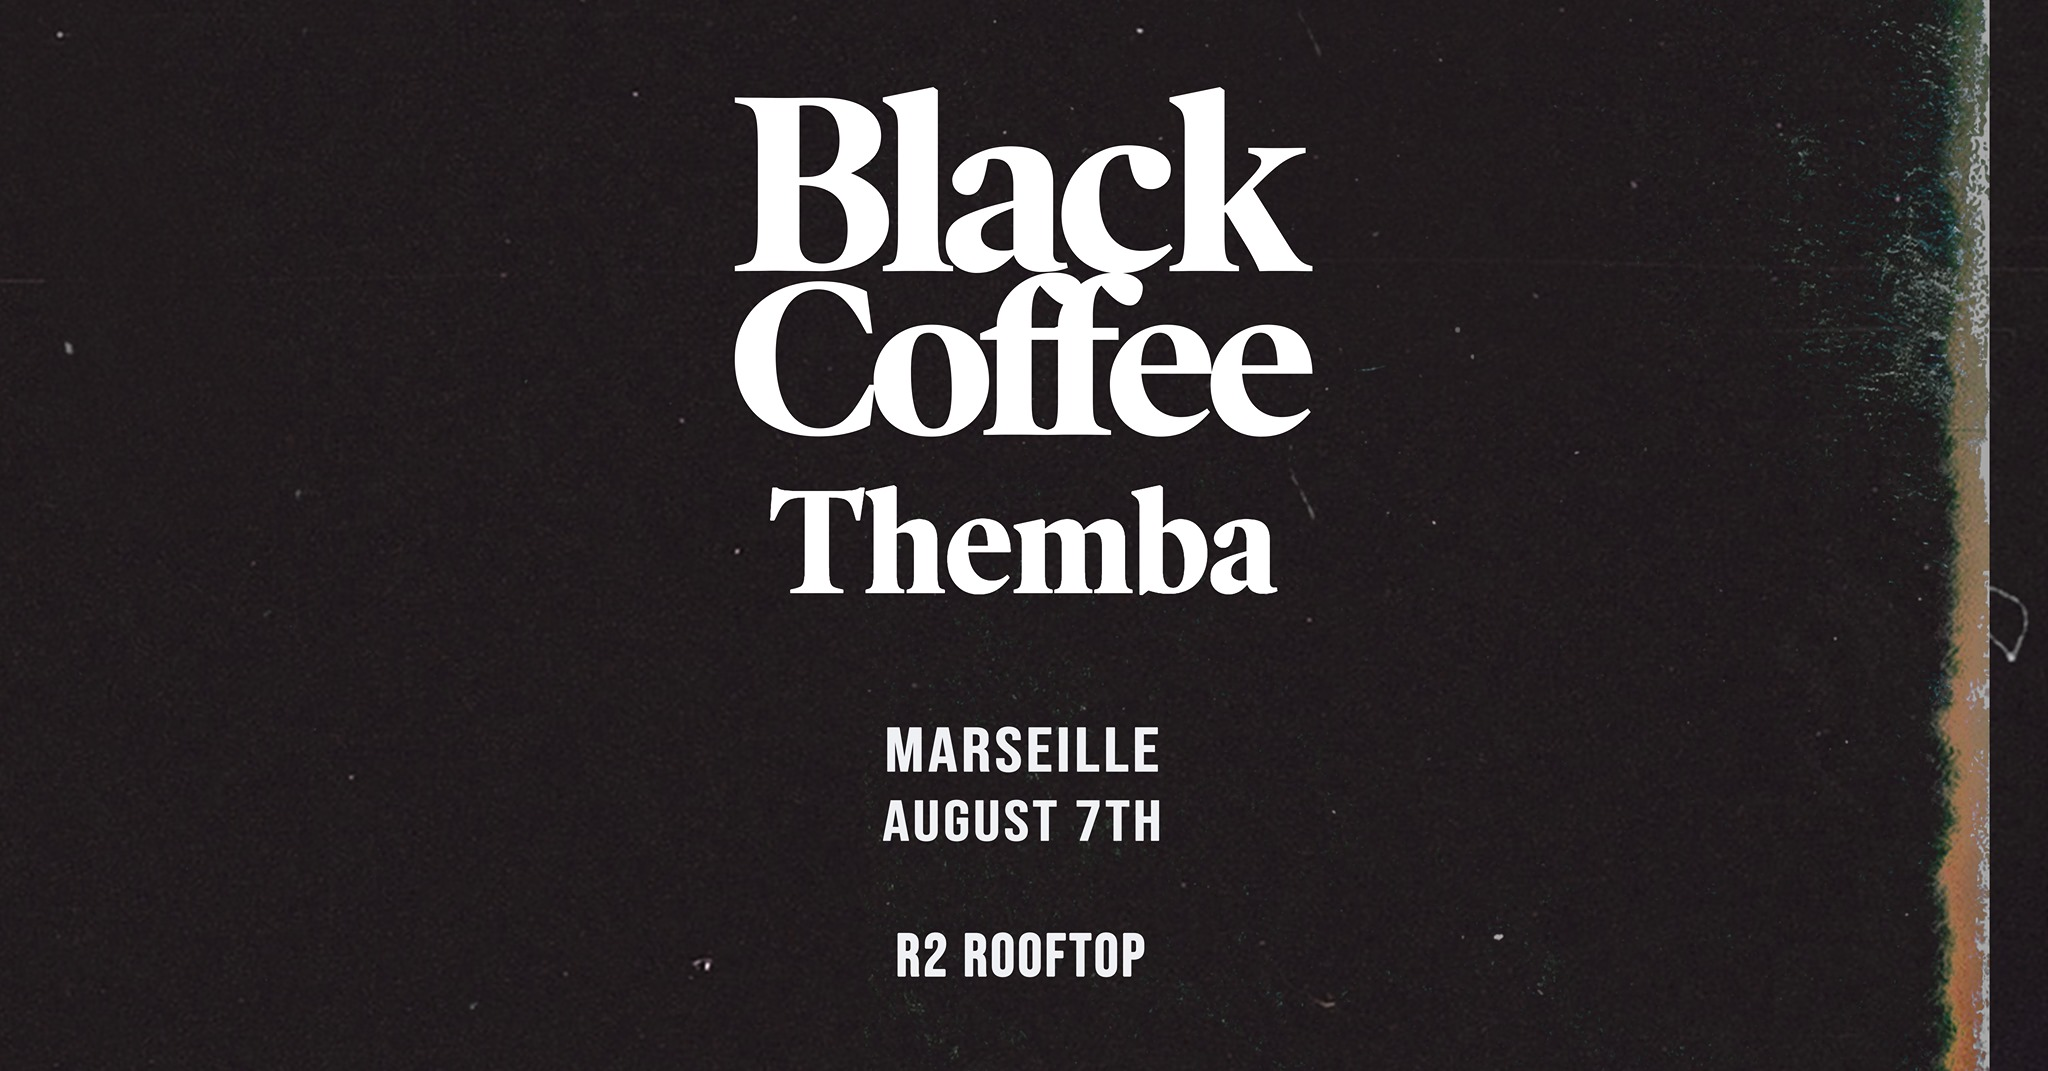 R2 Rooftop • Tunnel Of Love • Black Coffee